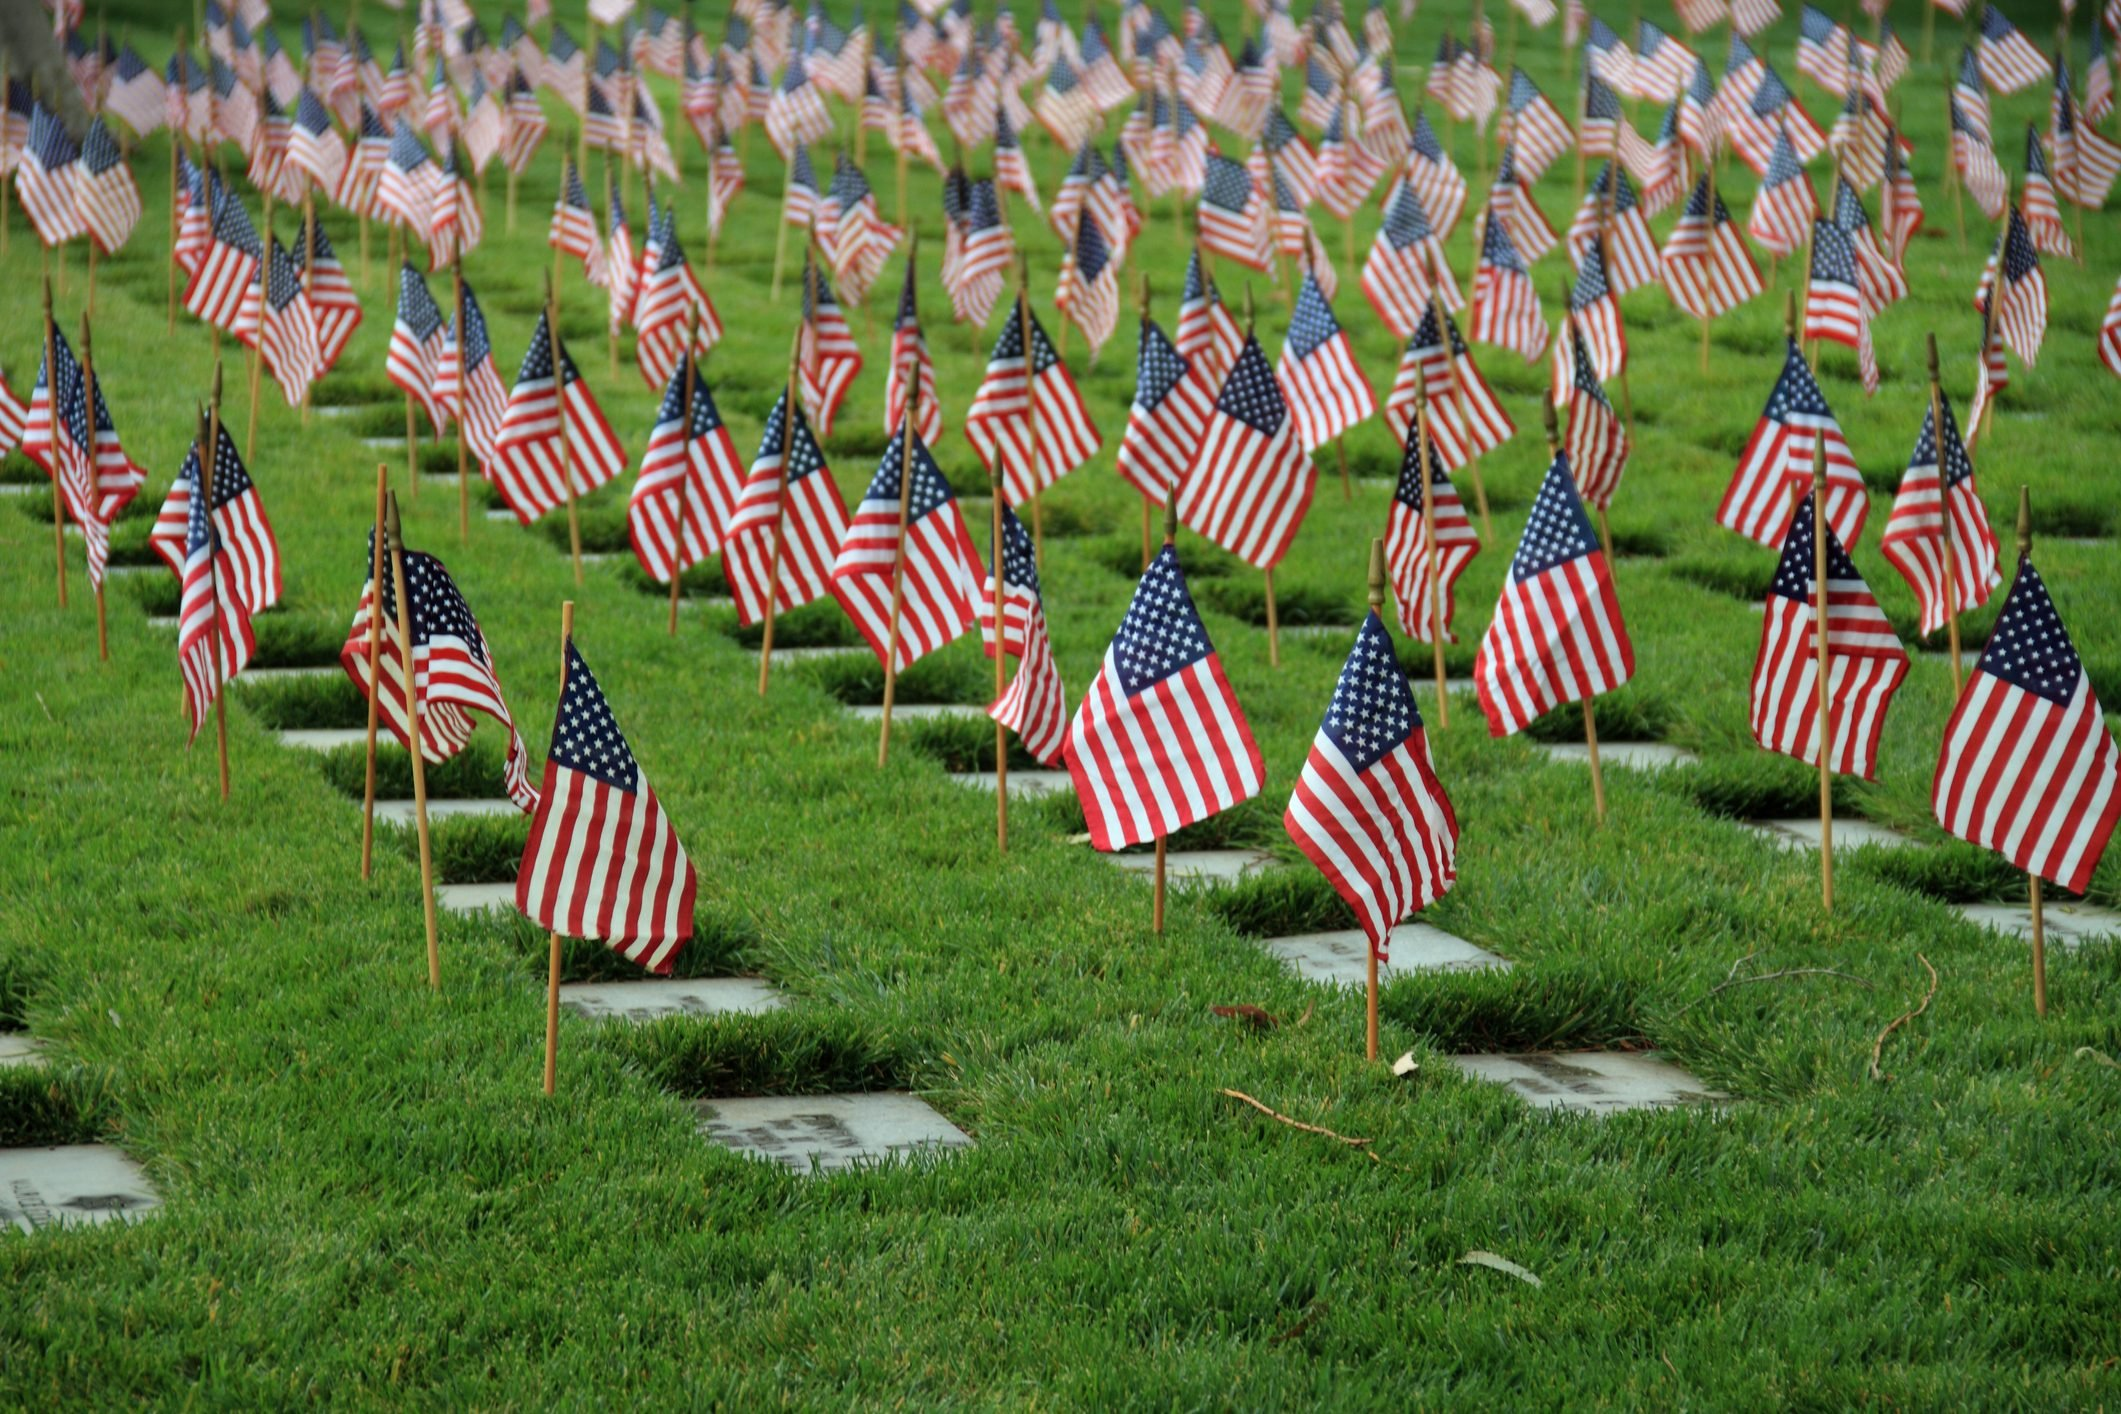 Flags grave markers Los Angeles memorial cemetery